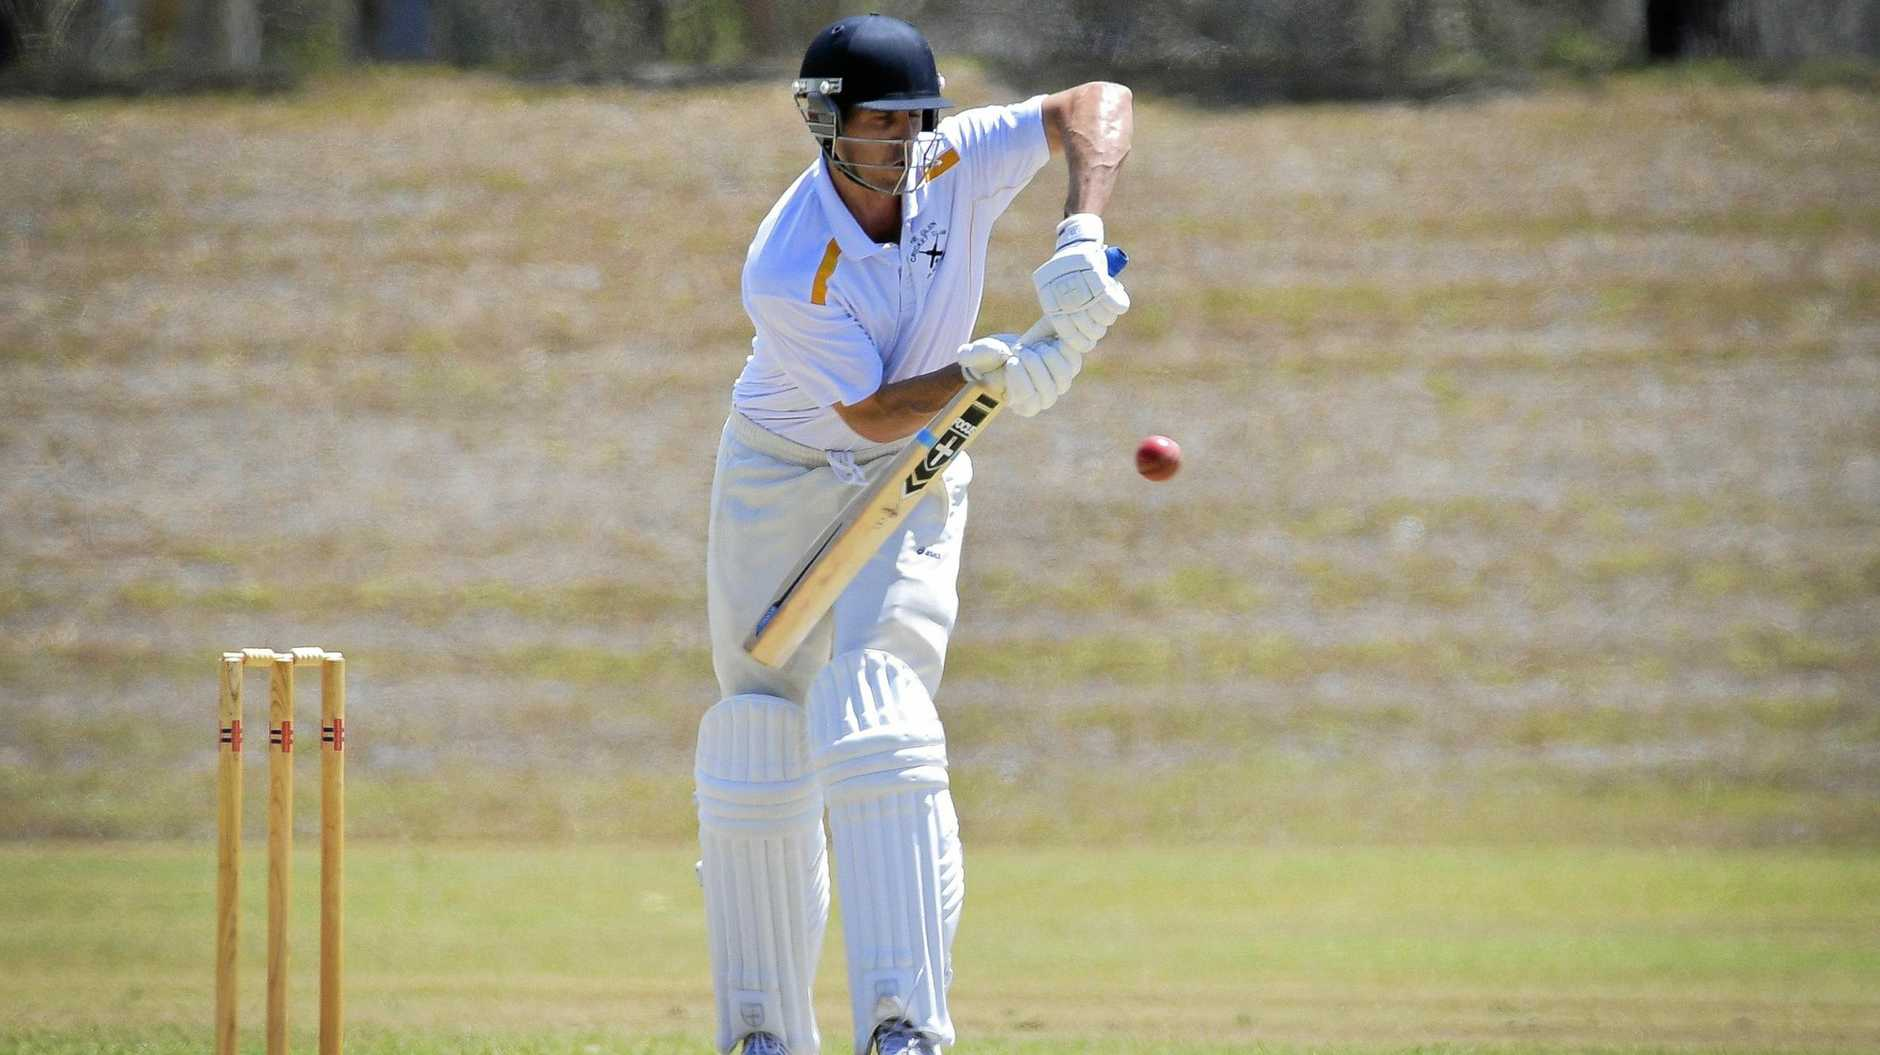 Jason Seng made a good 53 in the Cricket Frenchville Sports Club Capricorn Challenge match against BITS.